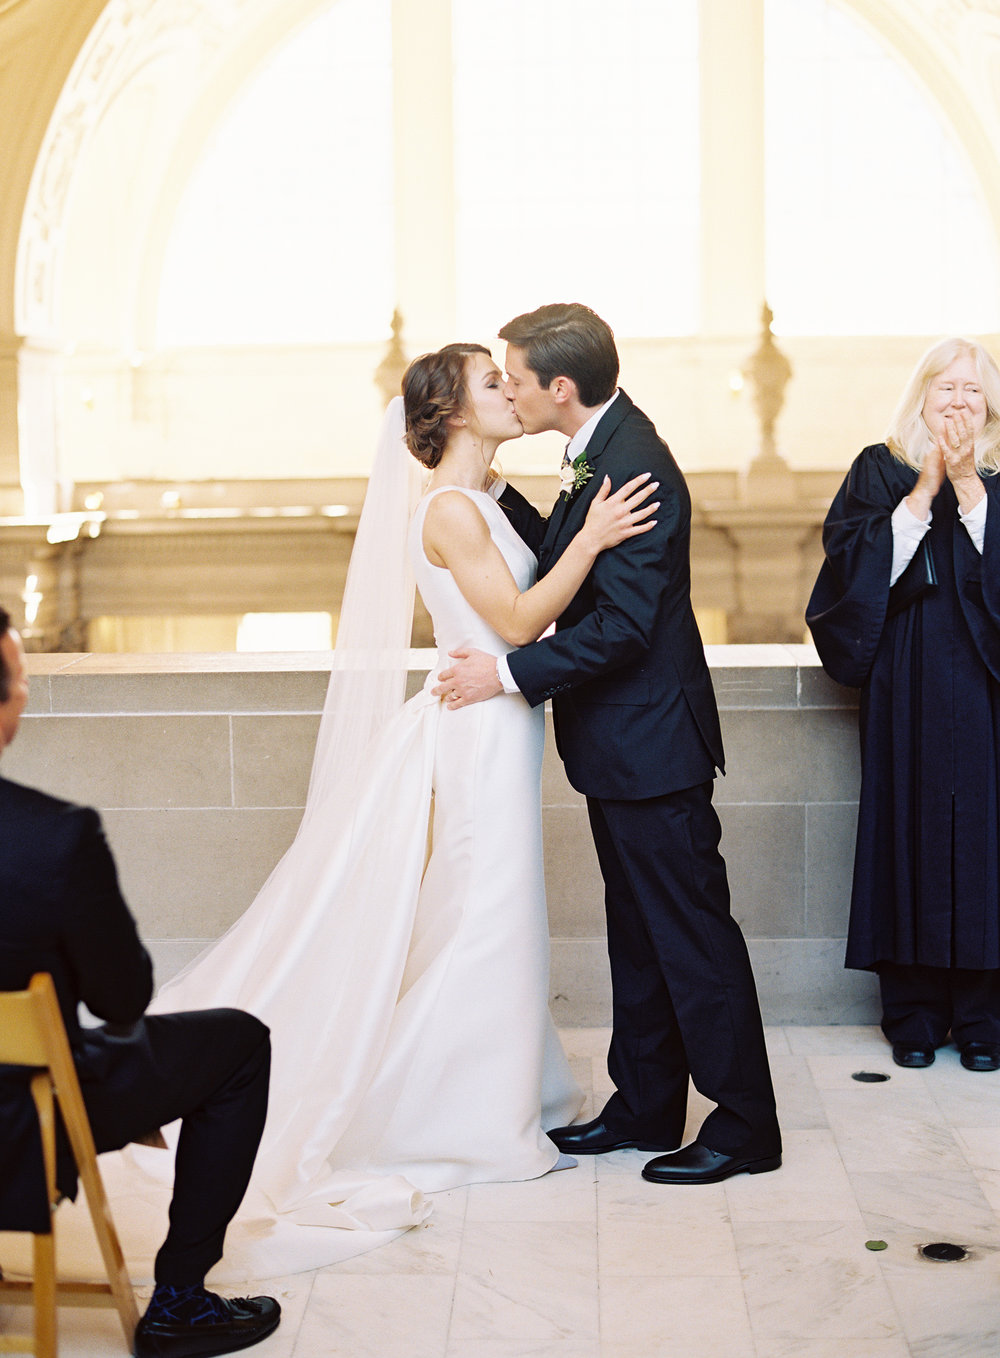 Meghan Mehan Photography - California Wedding Photographer | San Francisco City Hall Wedding 100.jpg